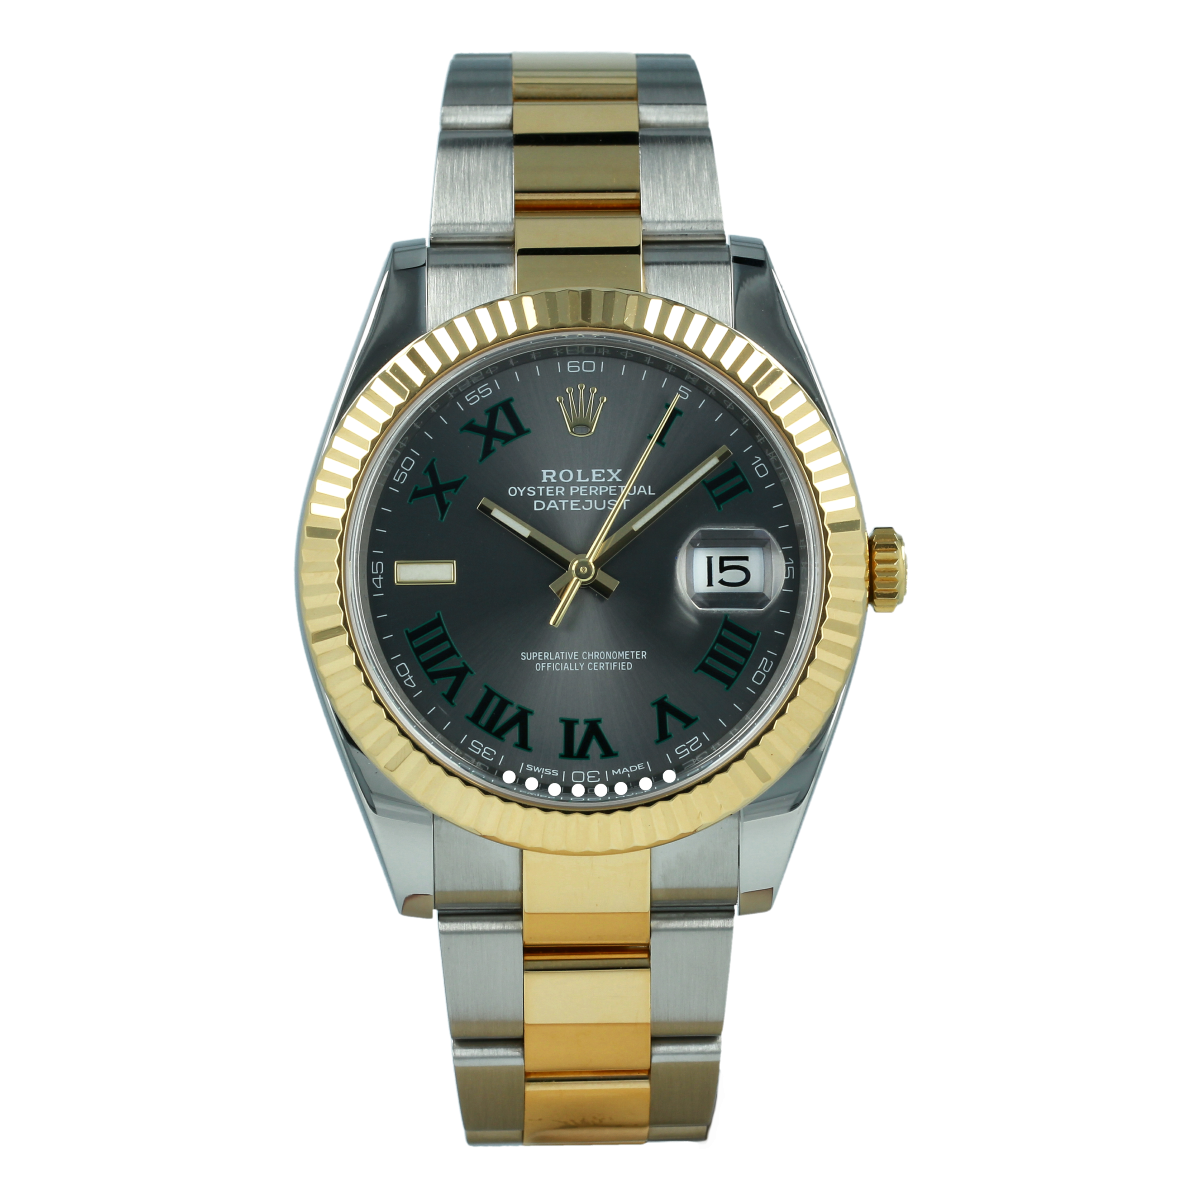 Rolex Datejust 126333 41mm